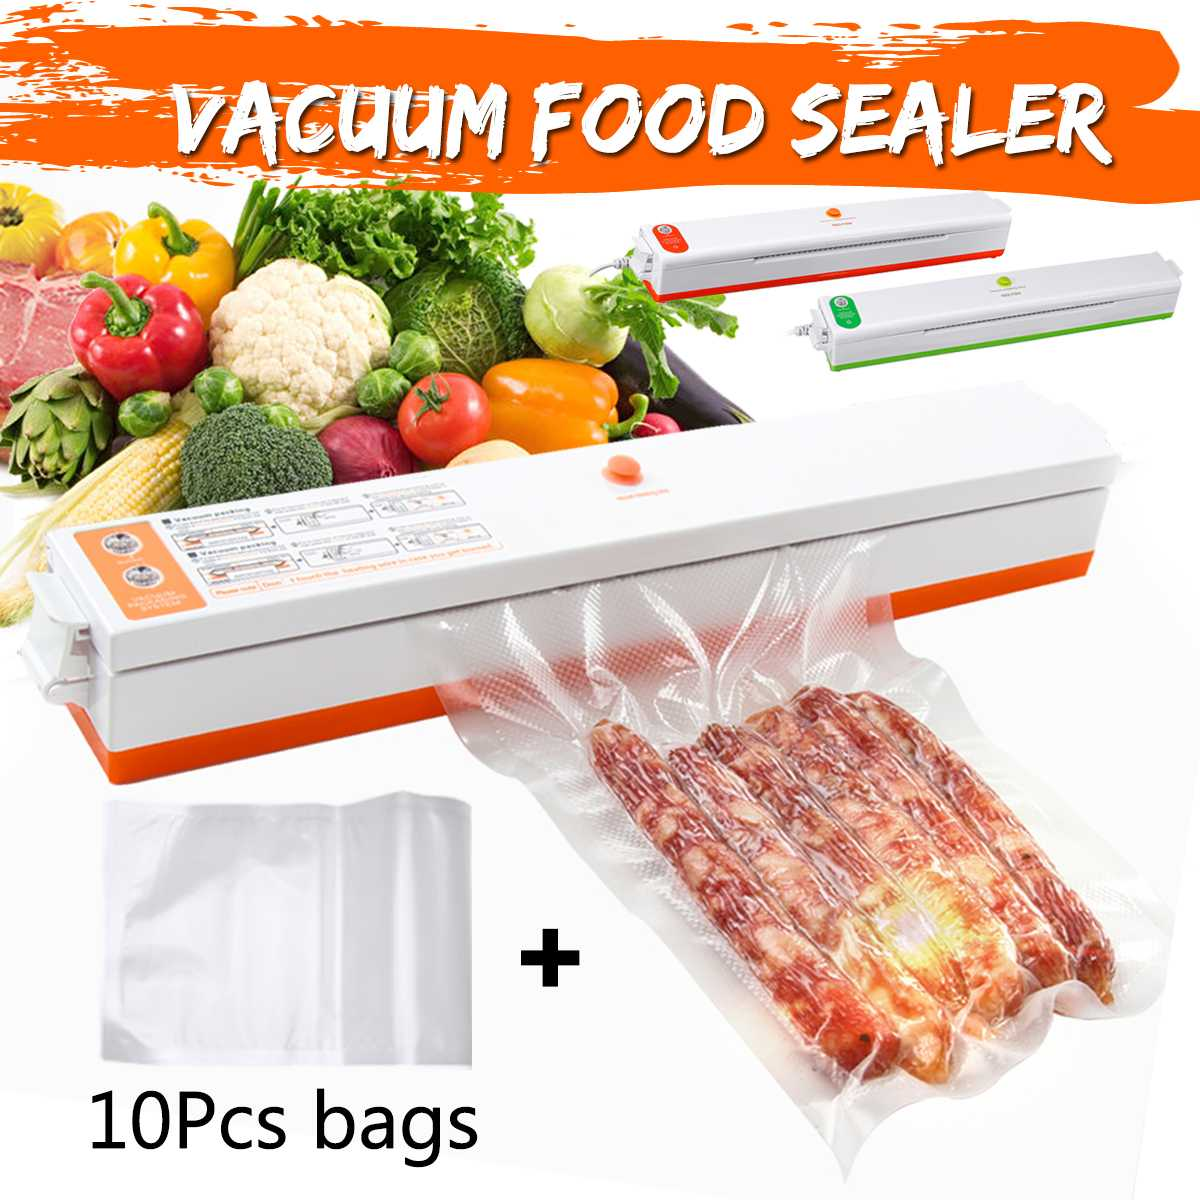 Household Food Sealer Saver 220V Vacuum Food Sealer Machine Vacuum Sealing Machine Film Container Include With Vacuum Packer